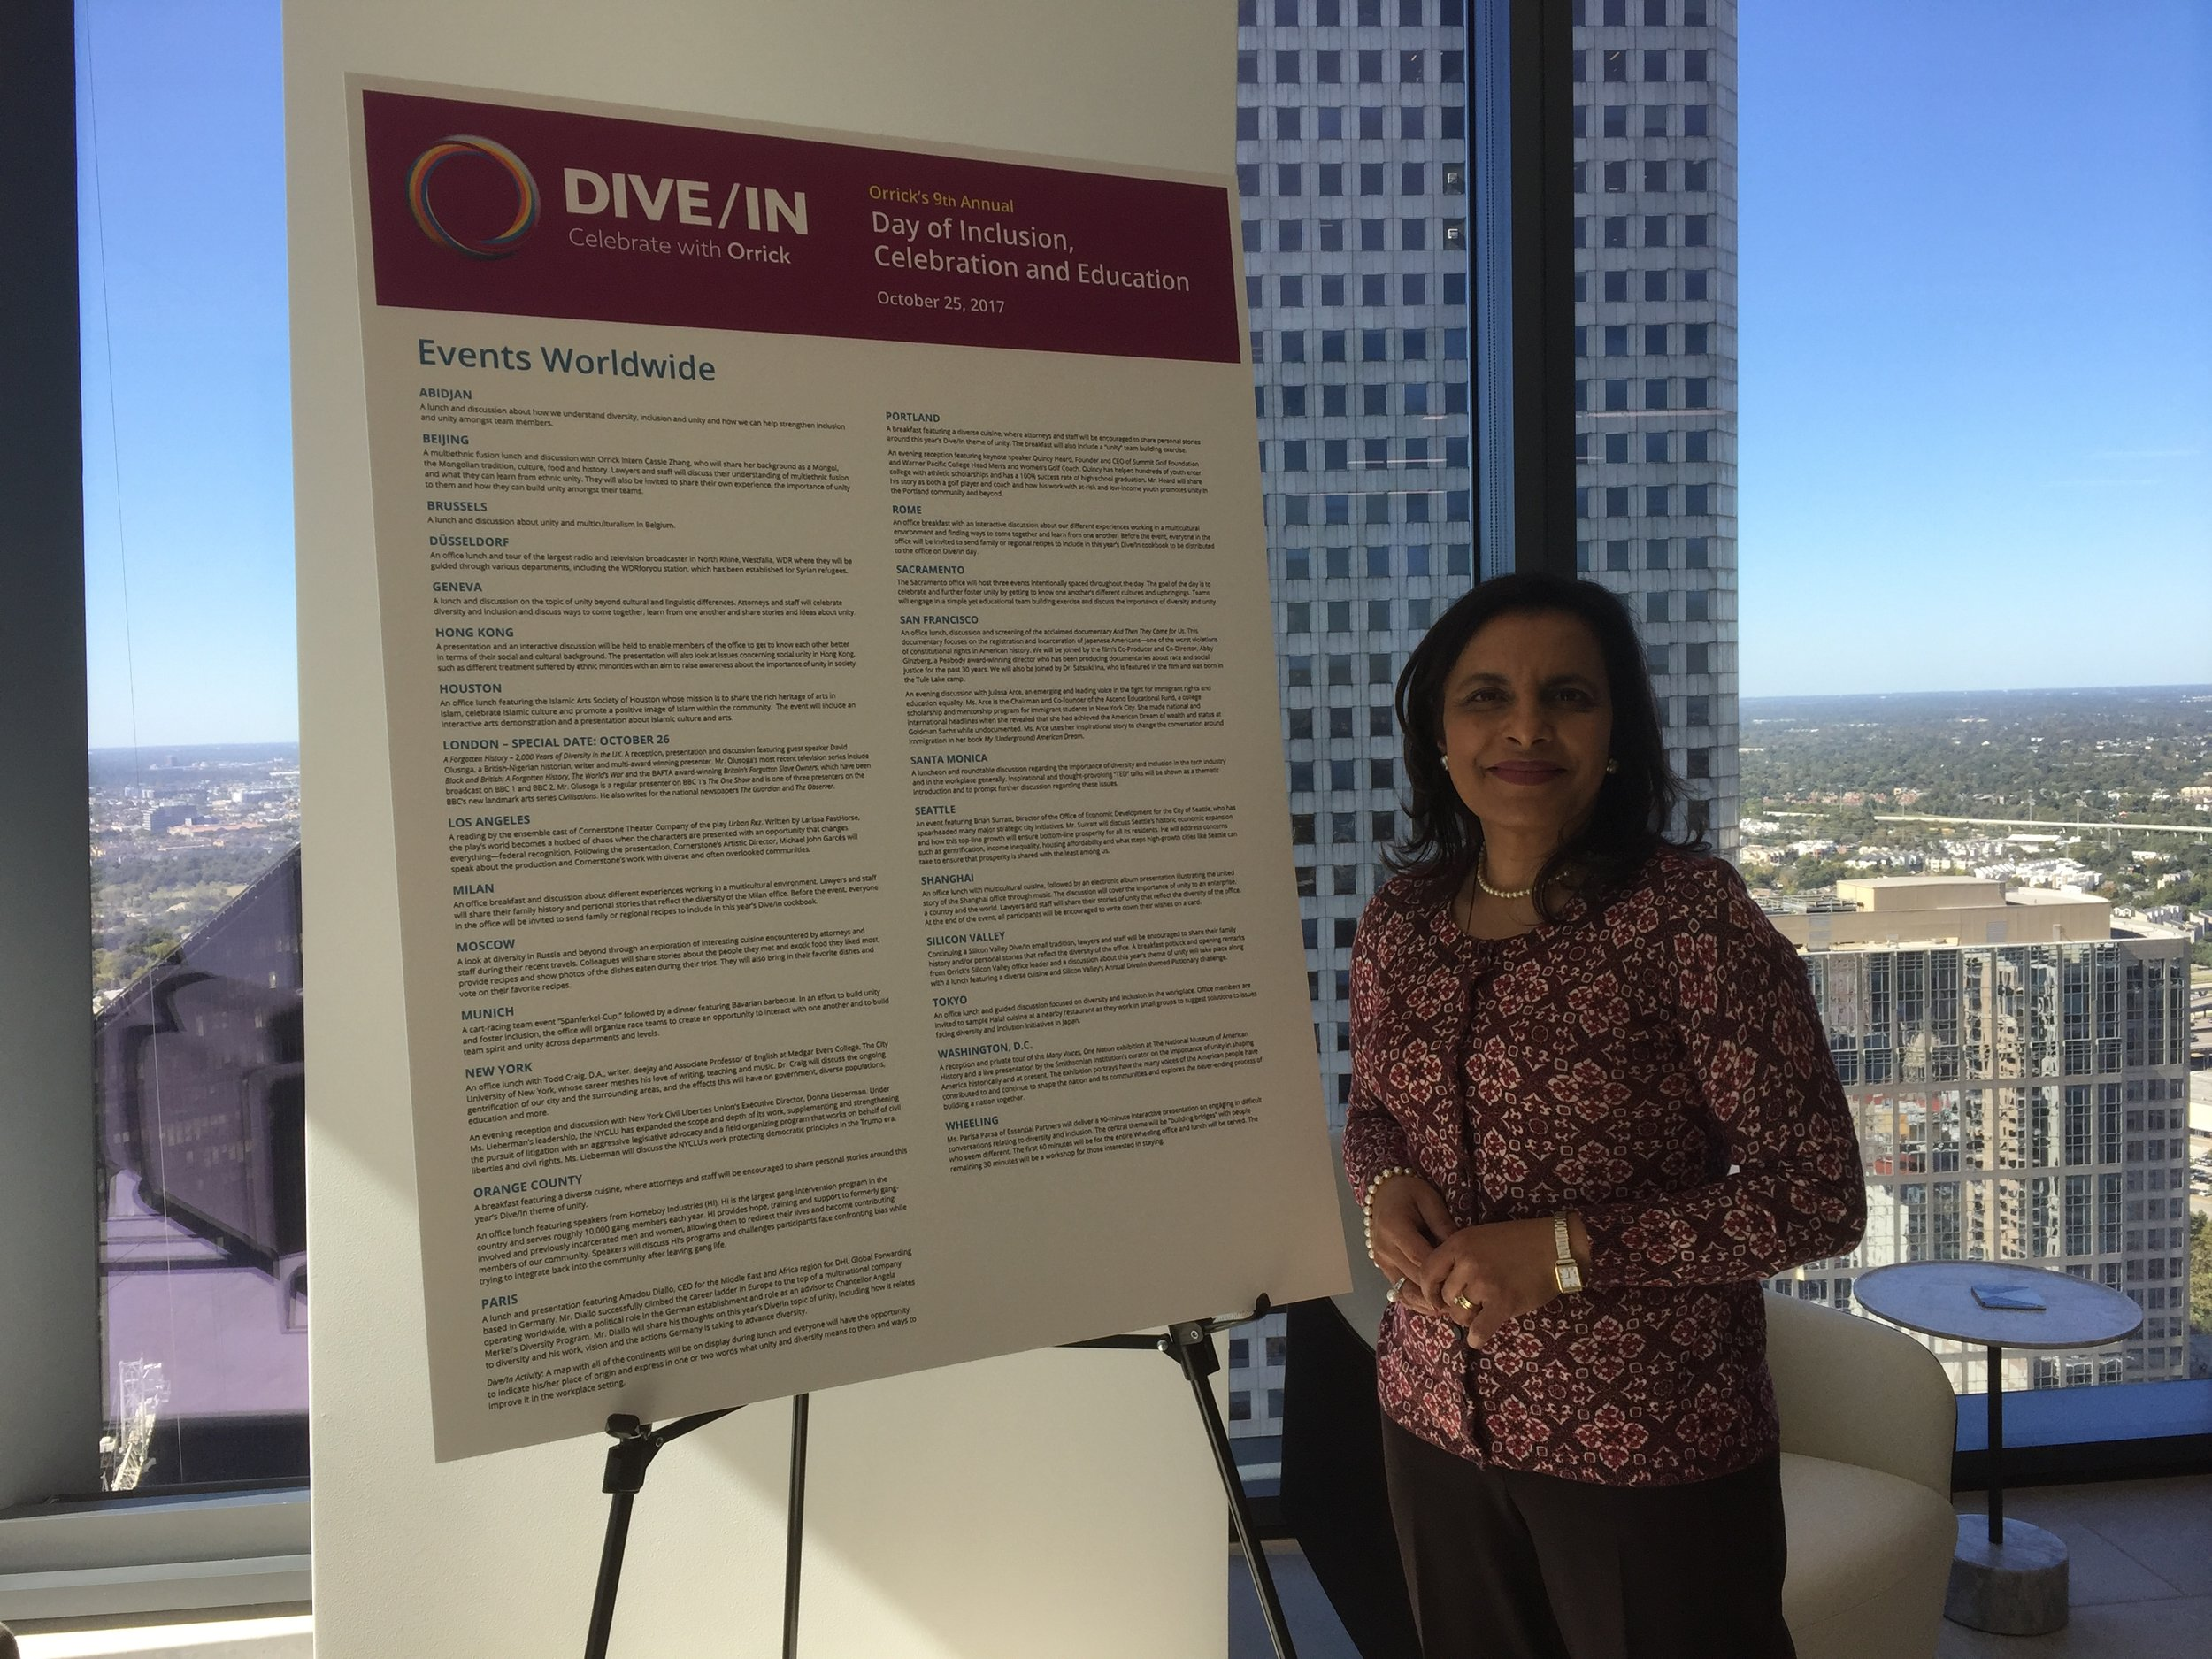 Celebrating Inclusion and Diversity at Orrick's Dive/In Day